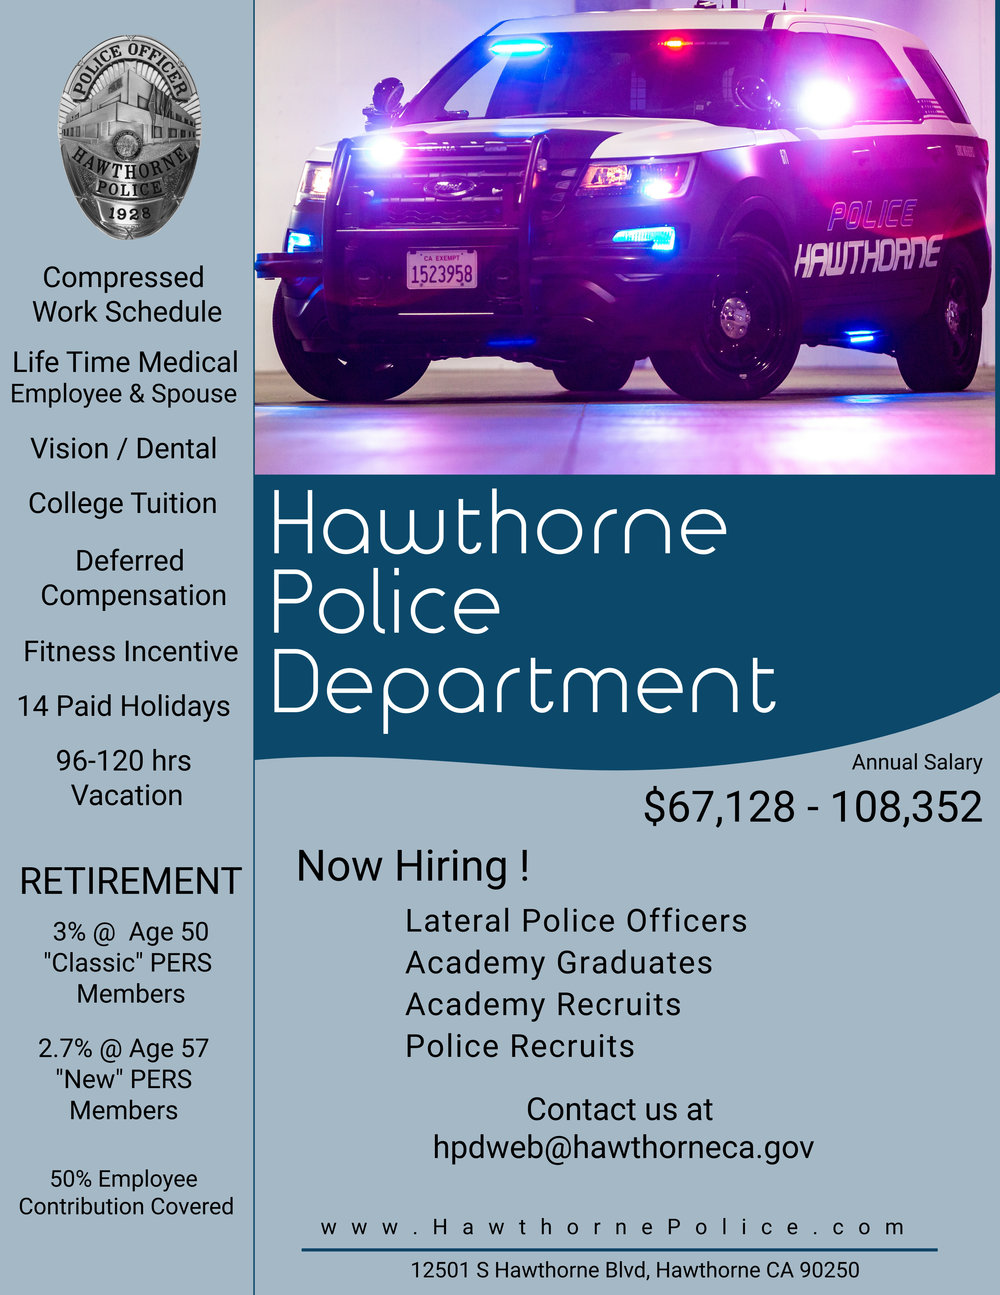 Hawthorne Police Department Now HIring